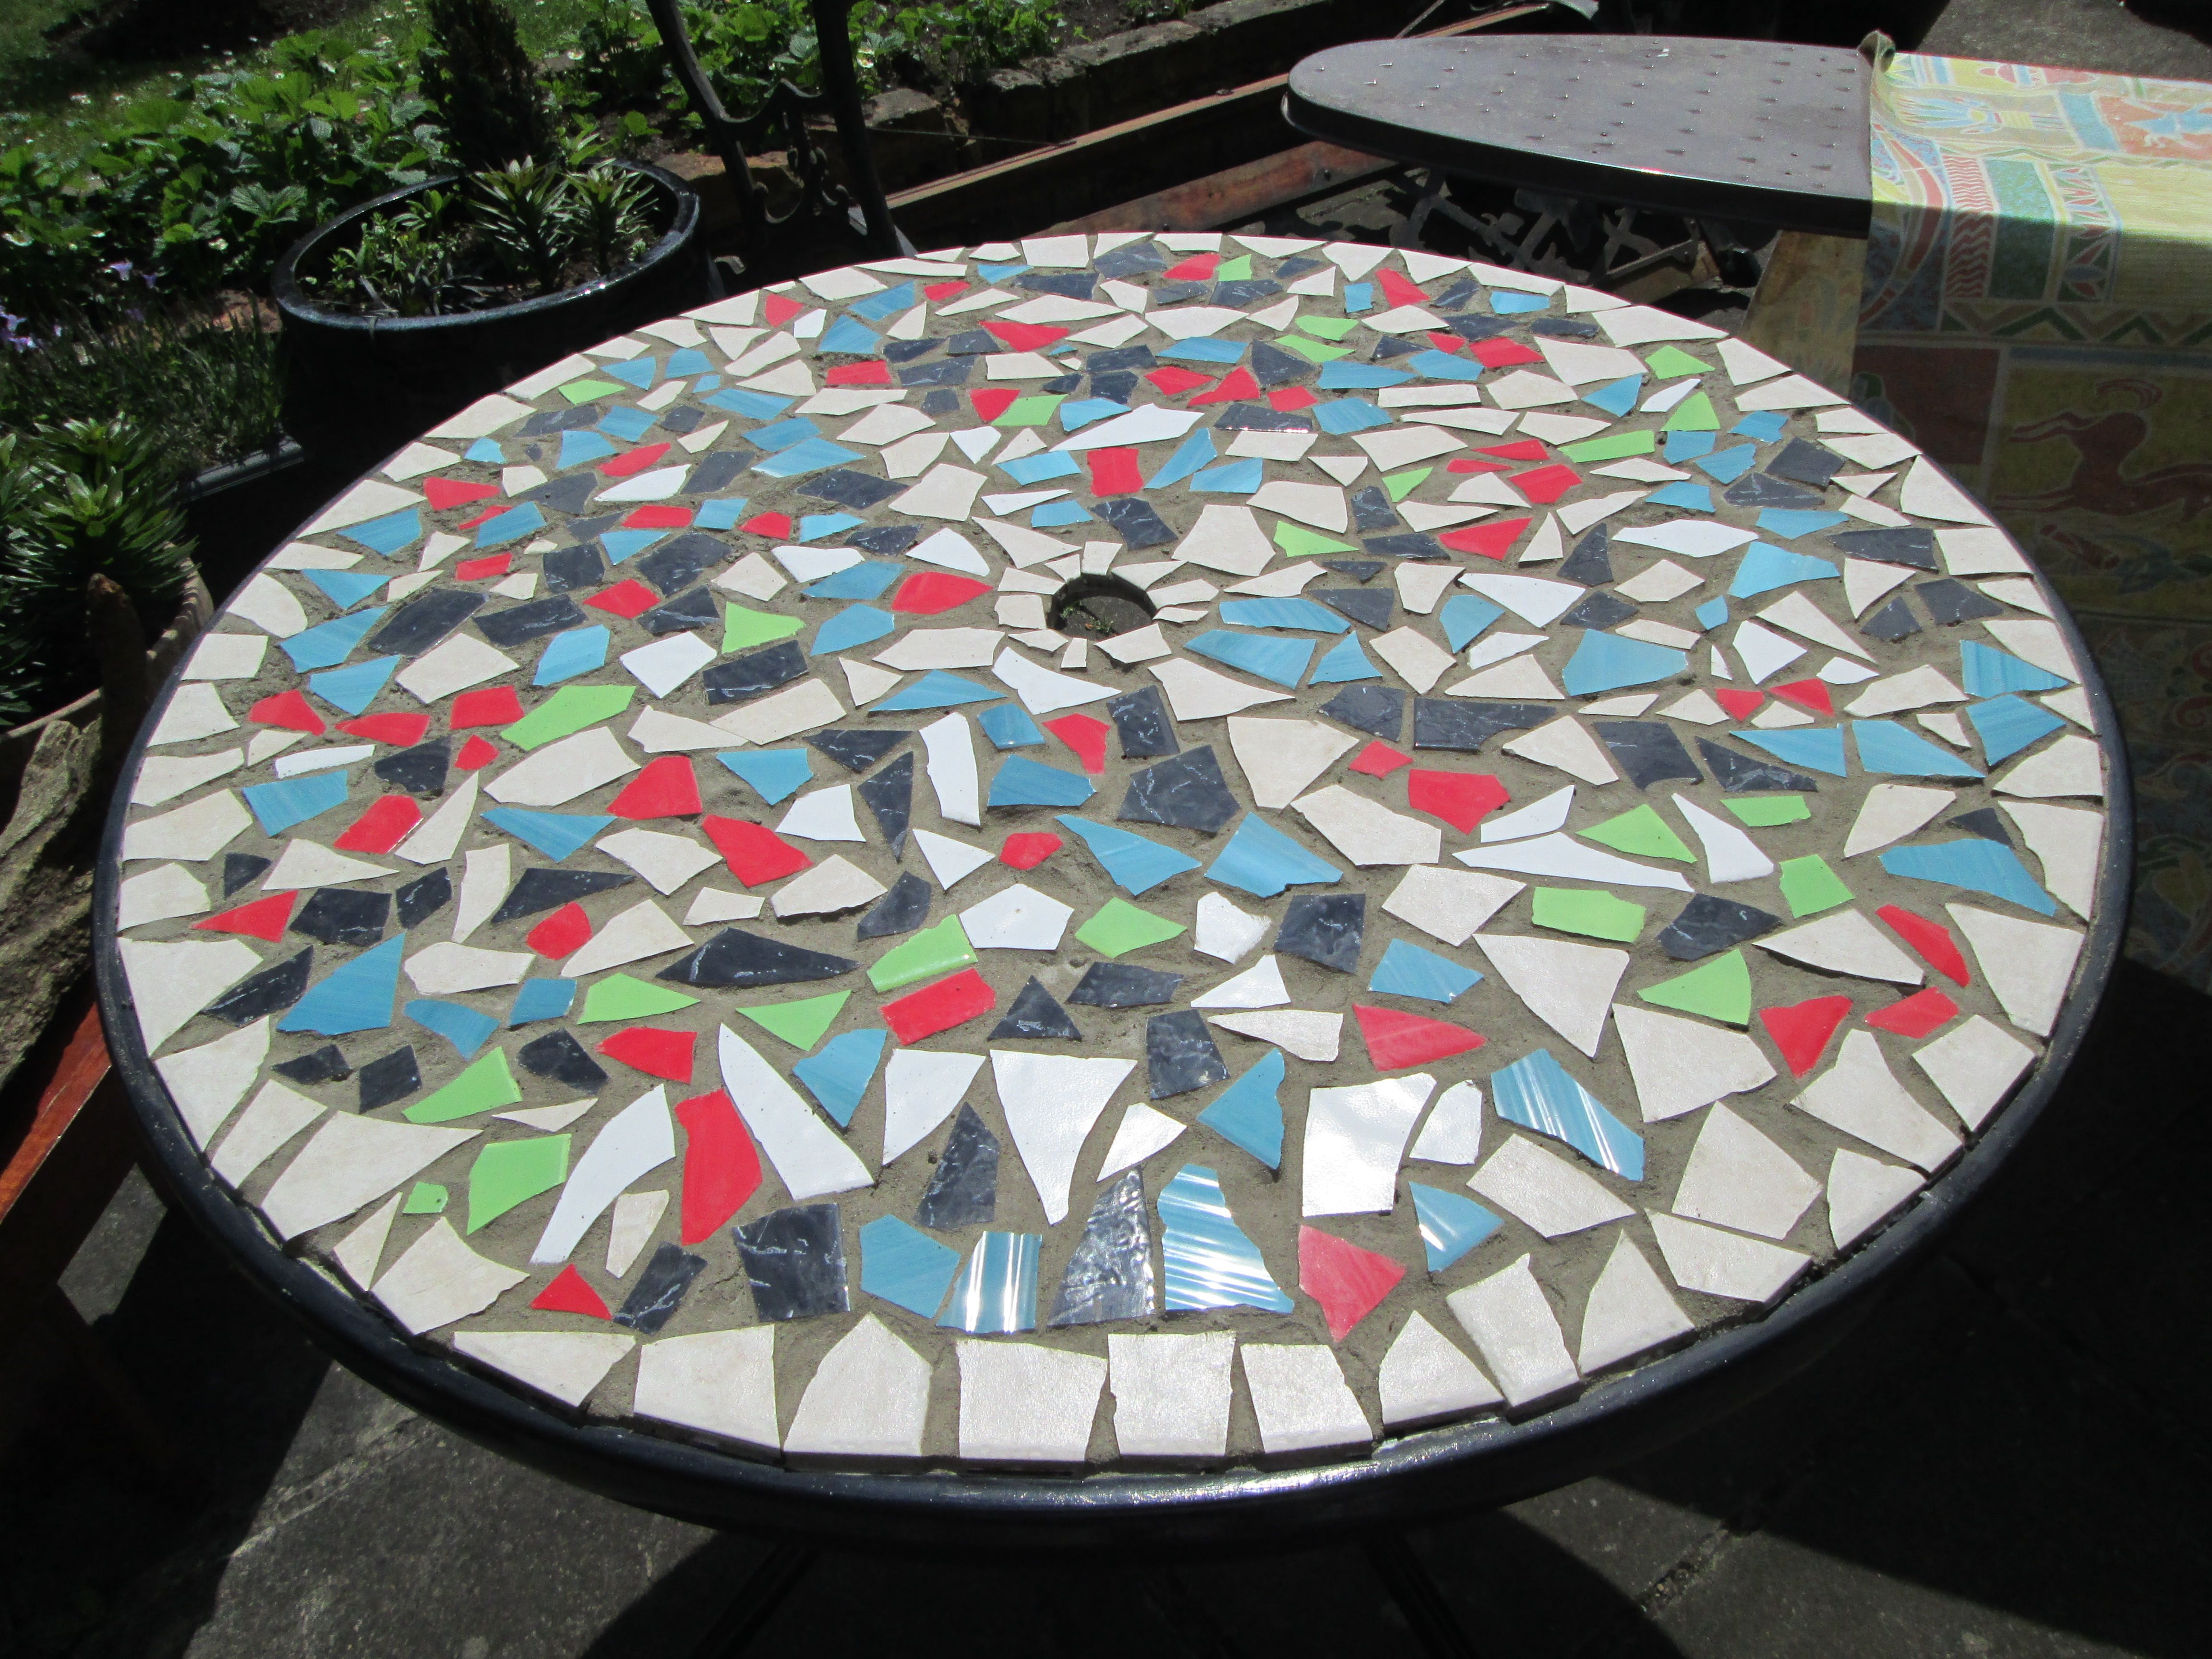 How To Design A Mosaic Table Top With Ceramic Tiles For